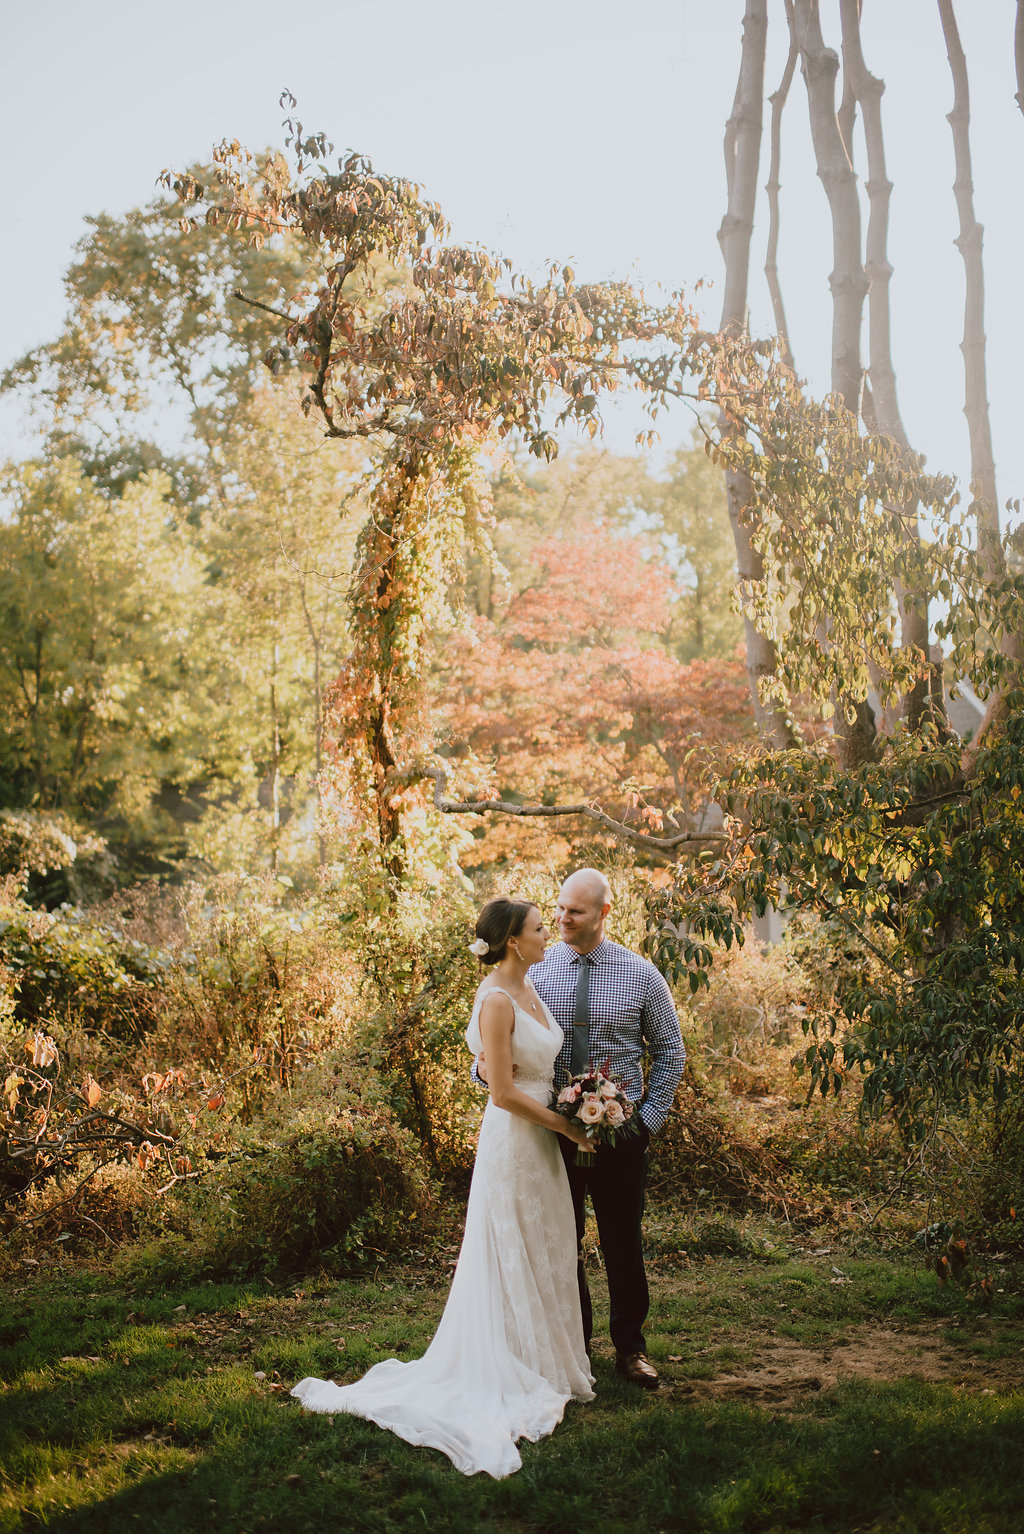 Bed & breakfast wedding in West Chester, Pa outside of Philadelphia :: wedding planner: Heart & Dash :: Pat Robinson Photography